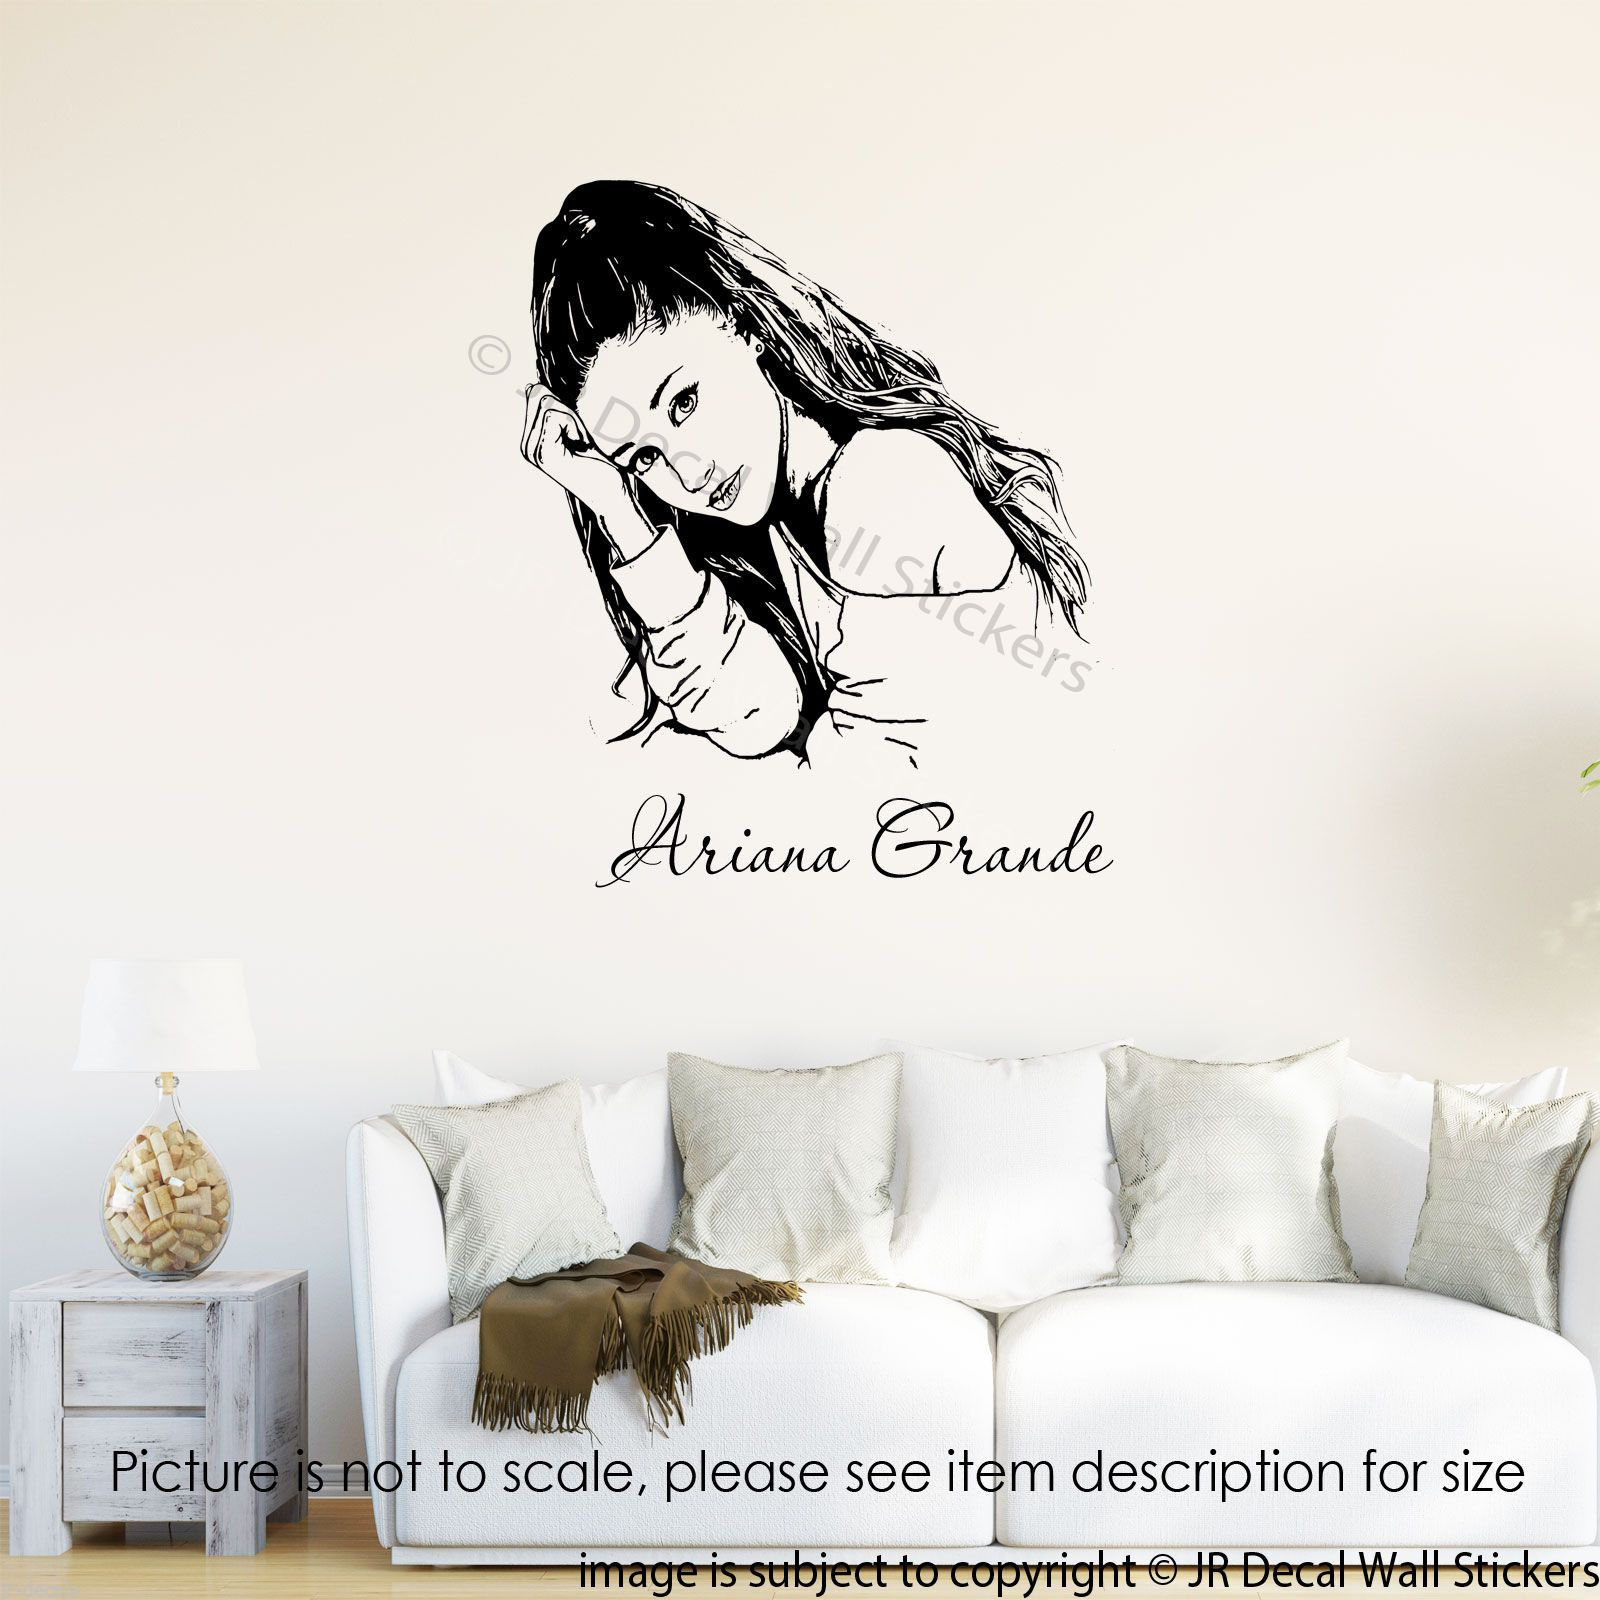 Ariana grande wall art sticker jrd cb 11 celebrity wall art ariana grande wall art sticker jrd cb 11 amipublicfo Image collections